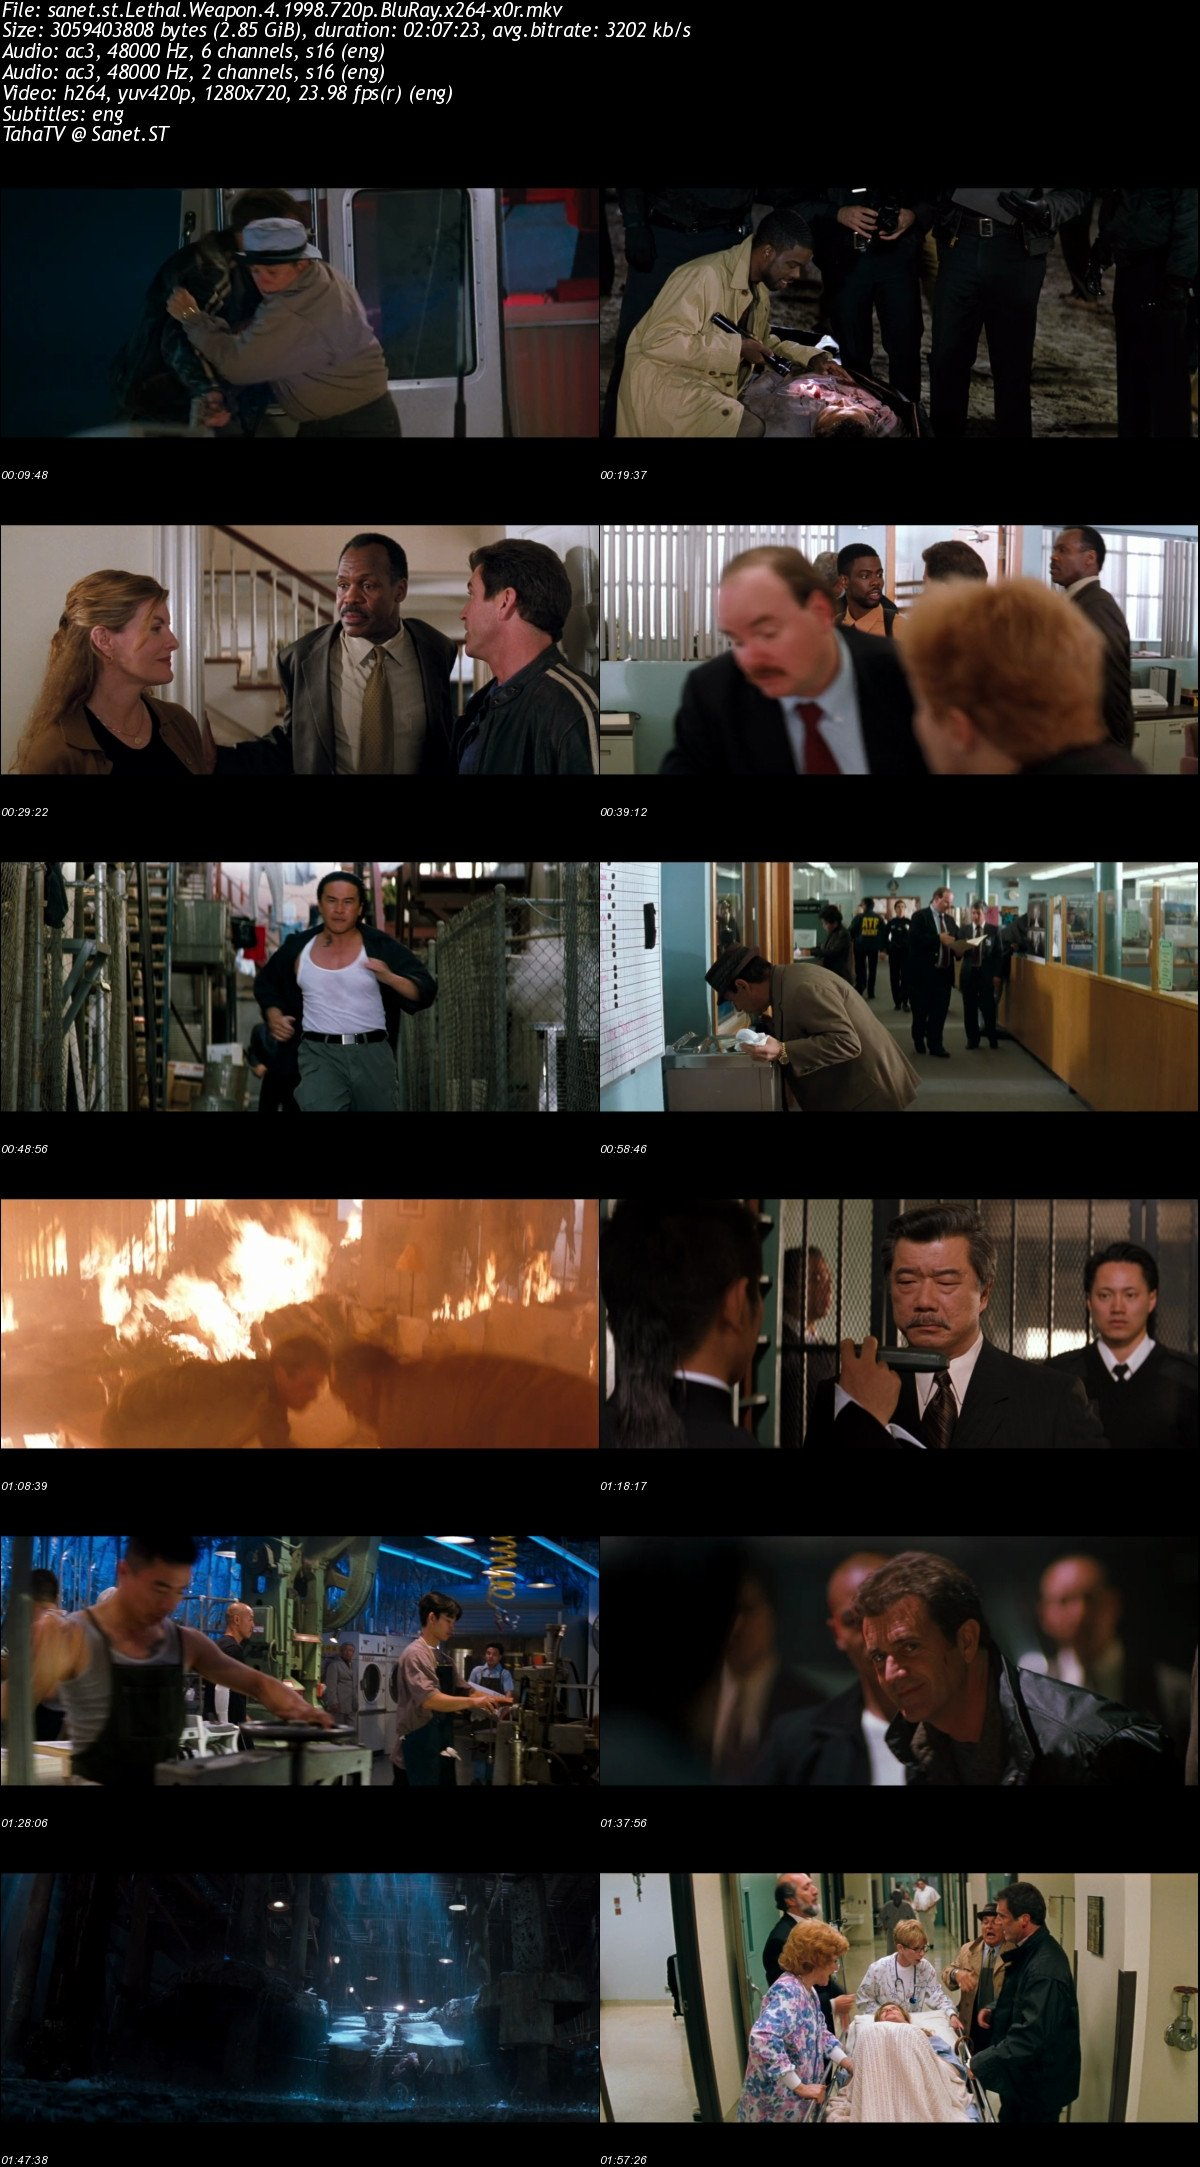 Download Lethal Weapon 4 1998 720p Bluray X264 X0r Softarchive